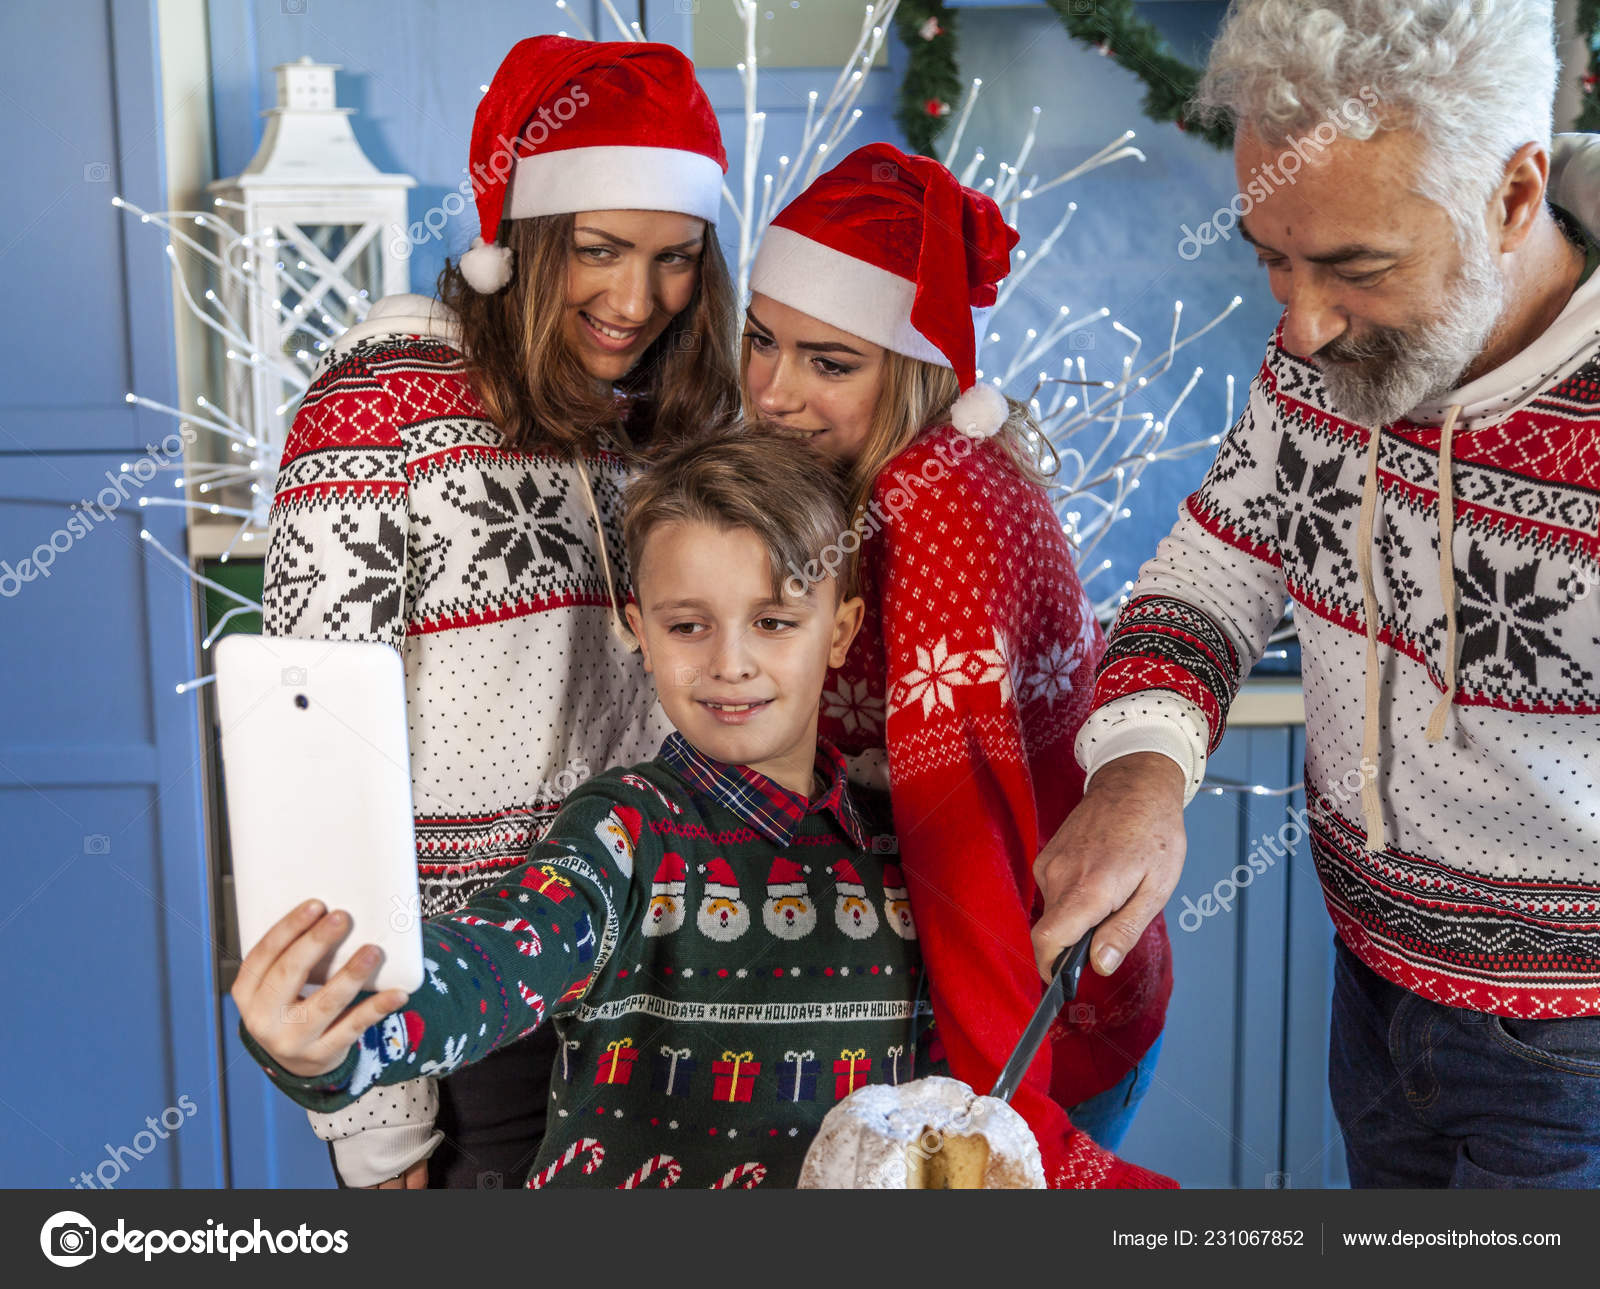 Reunited At Christmas.Happy Family Reunited Christmas Day Taking Selfie Table Home